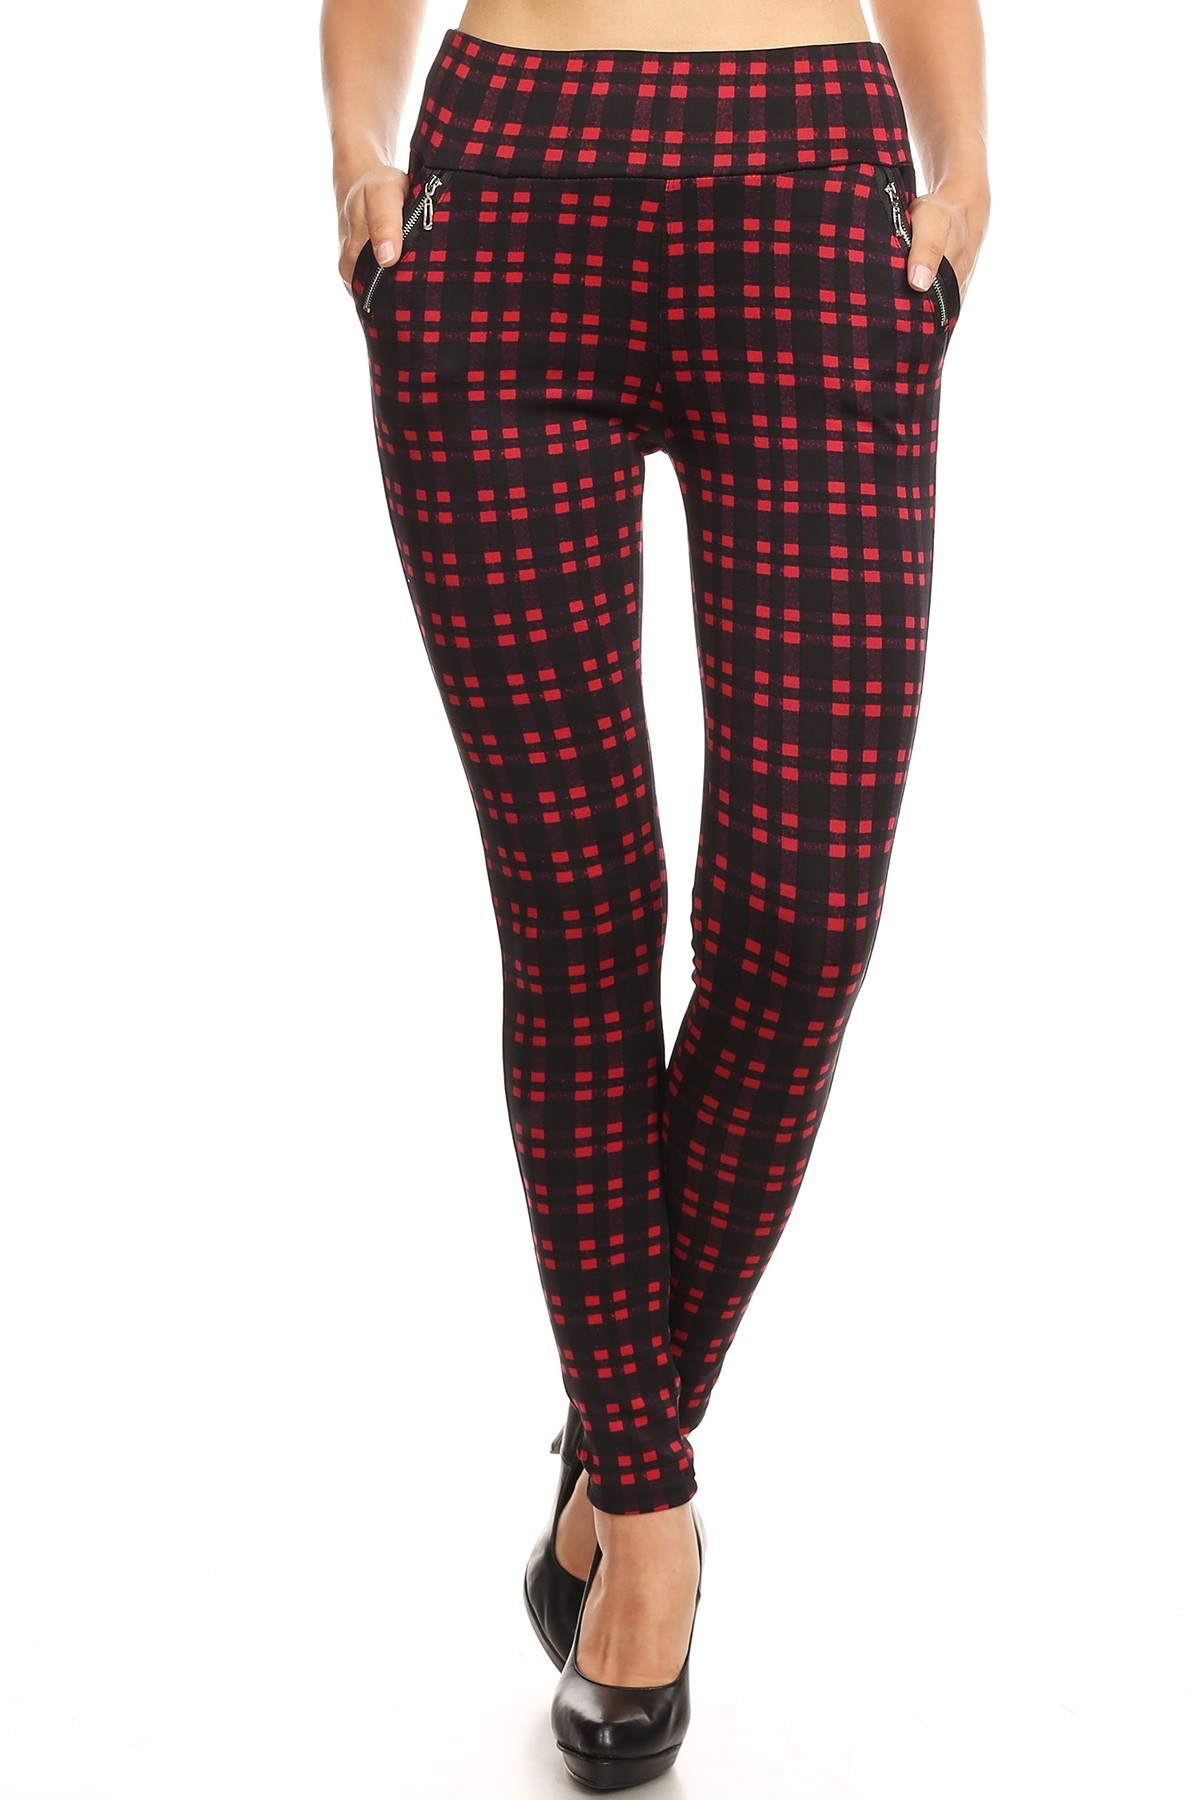 BLACK/RED PLAID PRINT TREGGING WITH ZIPPER DETAIL #8TRG03-11